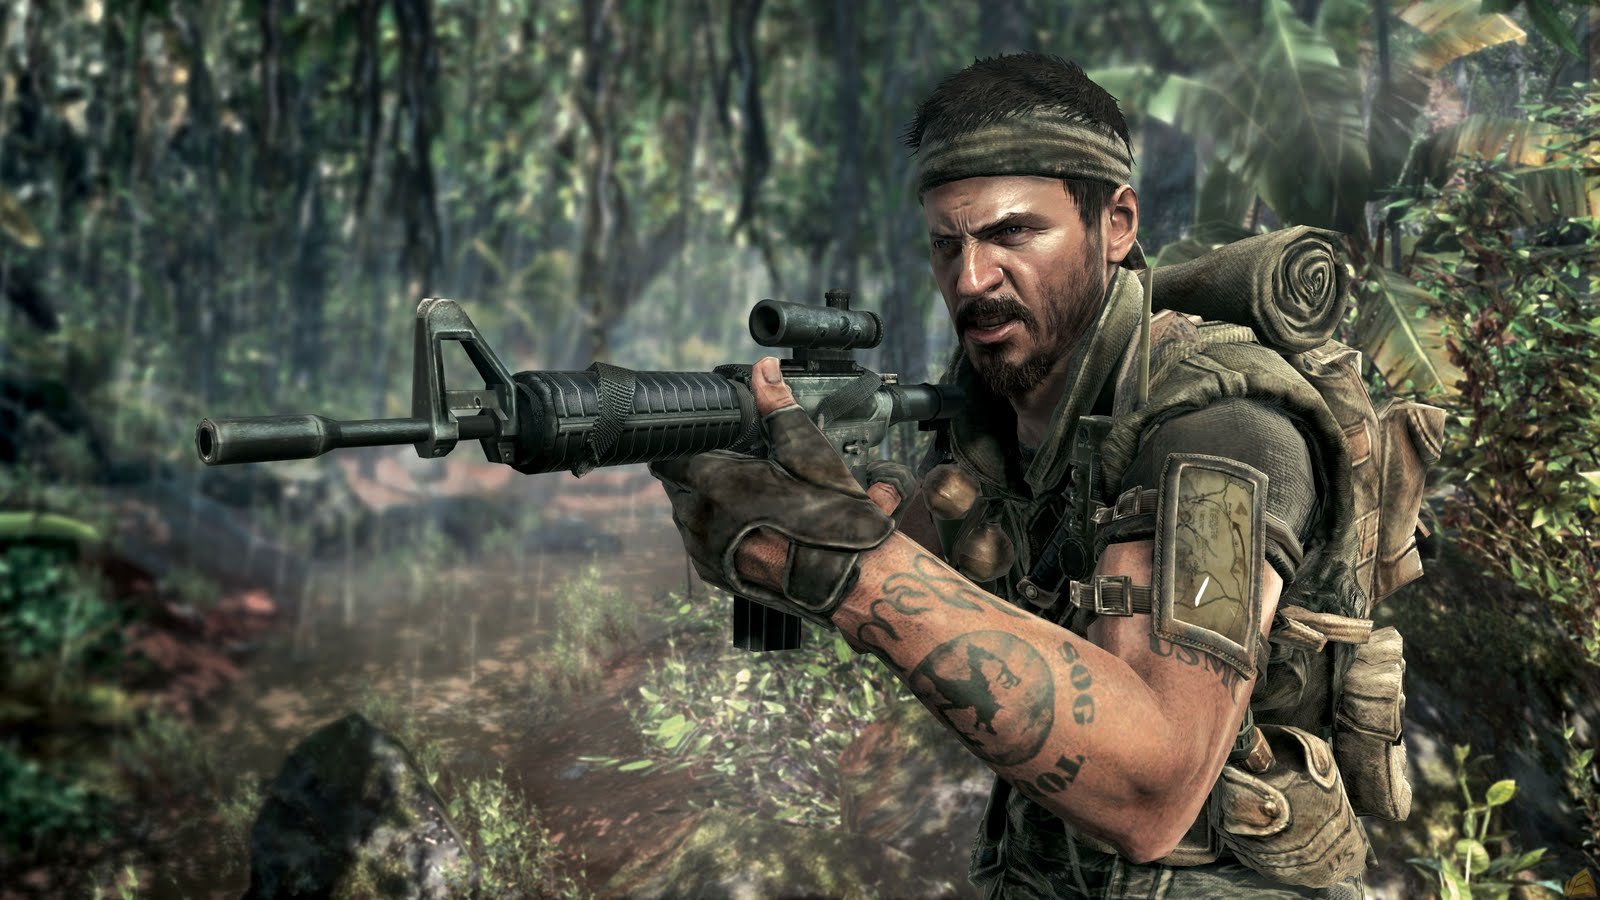 http://1.bp.blogspot.com/_quOC2vwSKQ4/TSnEKTyc5fI/AAAAAAAAAKE/_kg5rNQ9Z5Q/s1600/call-of-duty-black-ops-screenshot-main-character-jungle-face.jpg